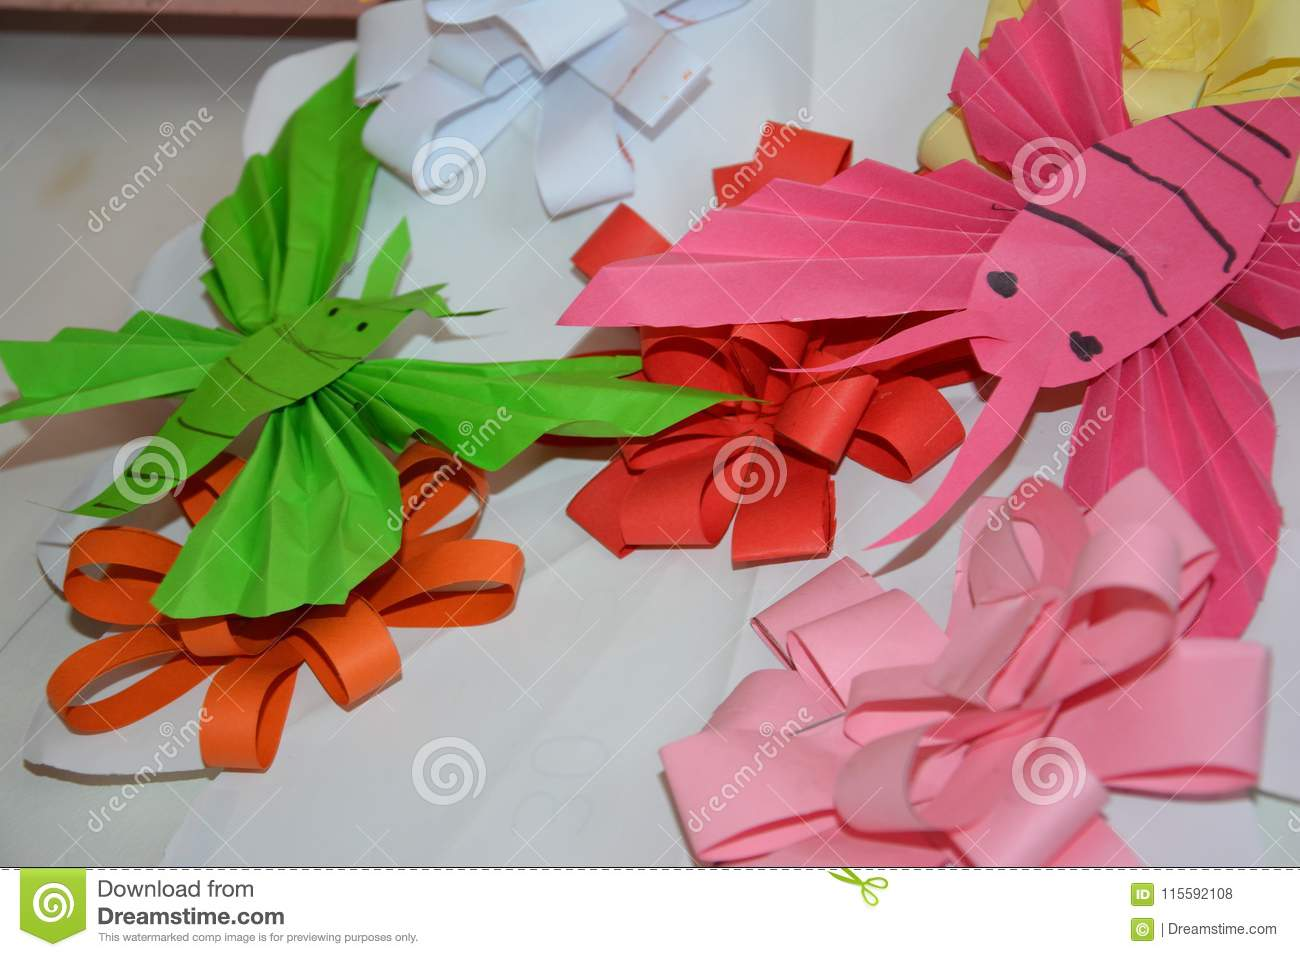 Paper flowers and paper butterflies stock photo image of closeup butterflies and flower hand made from colorful paper by small children mightylinksfo